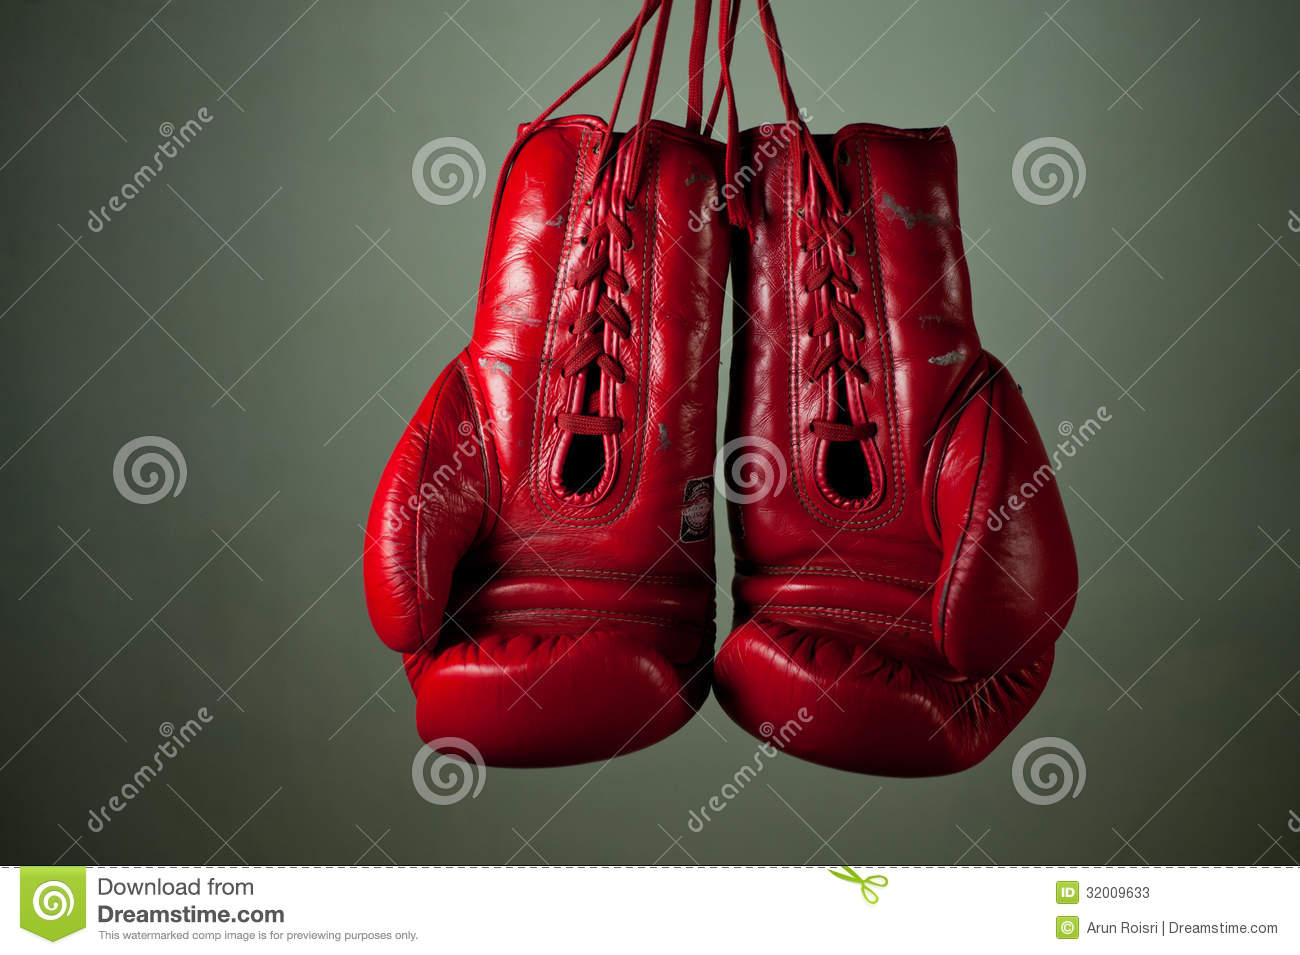 Audio Car Wallpaper Download Boxing Gloves Hanging From Laces Stock Image Image Of